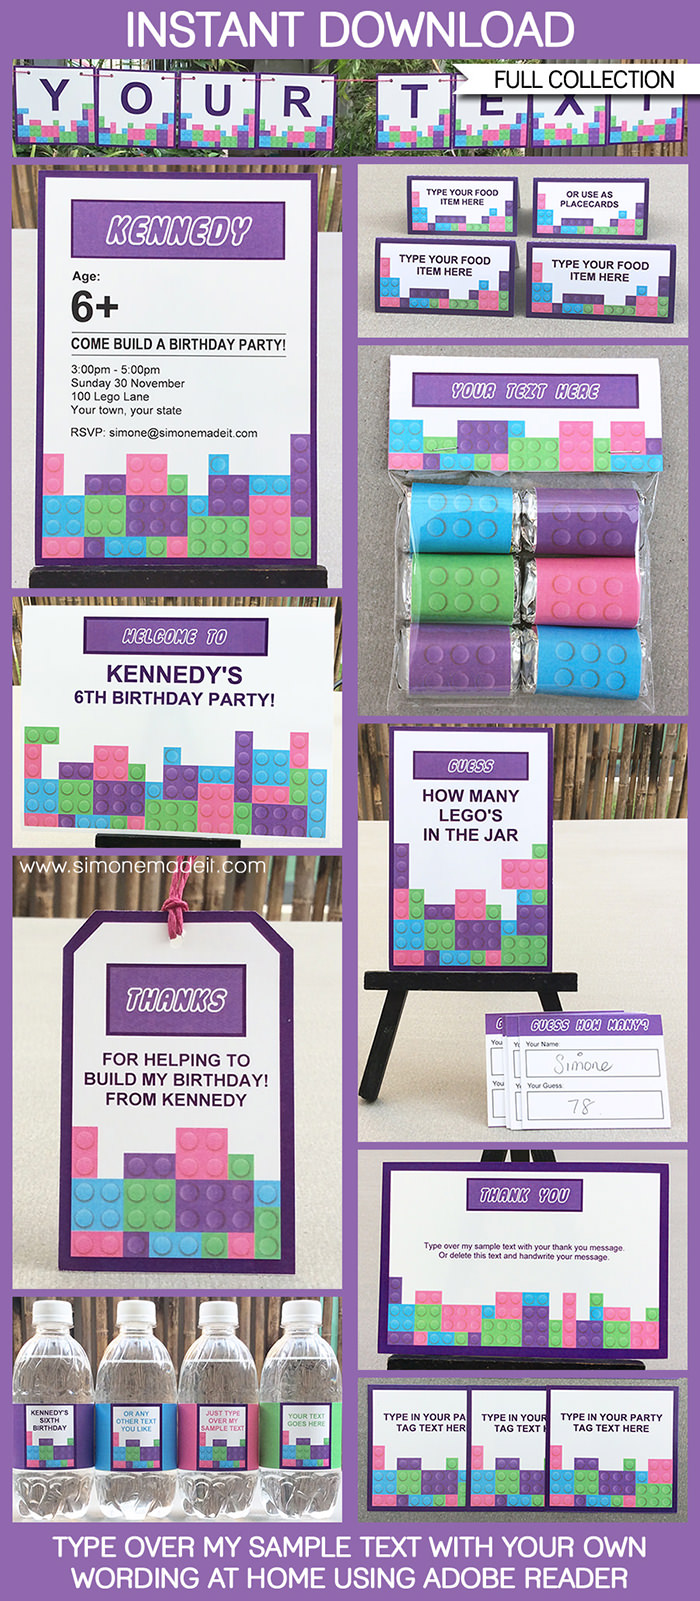 5 Images of LEGO Friends Party Printables